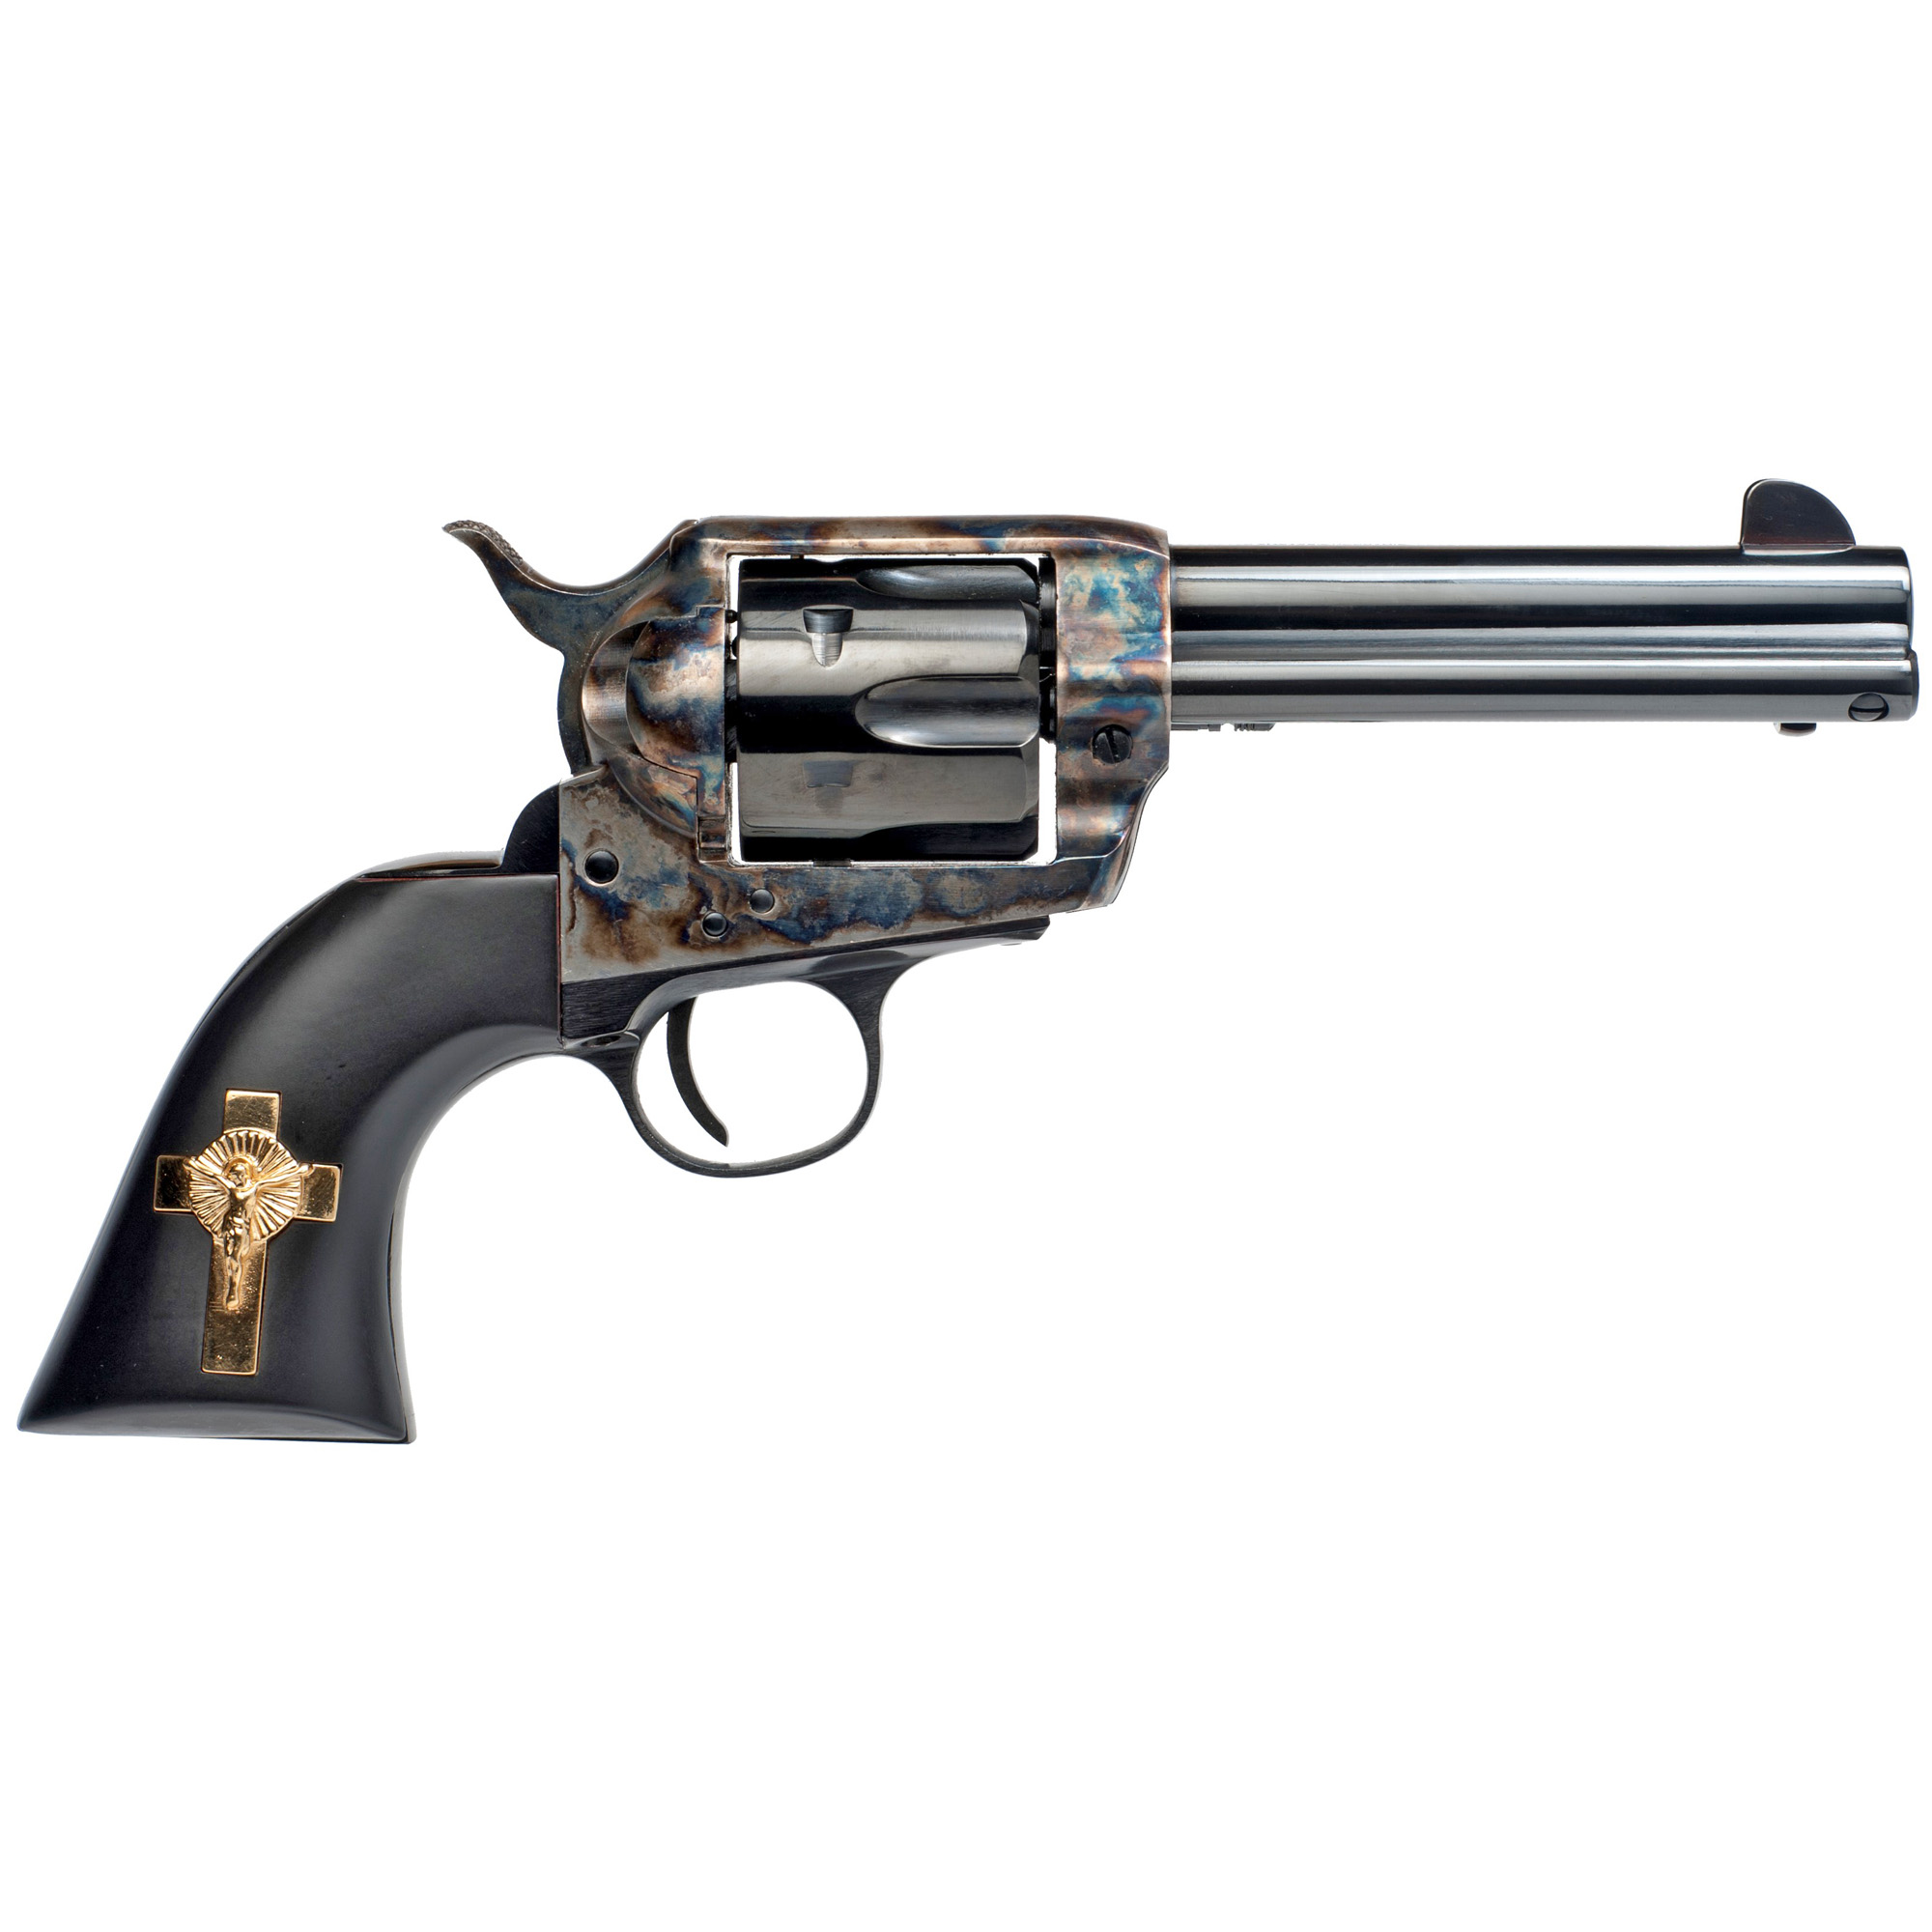 "This unique Western replica introduced by Cimarron Fire Arms was made famous in the 2007 remake of the classic 1957 horse opera 3:10 To Yuma. This Italian-import peacemaker-style replica is an exact duplicate of the iconic sixgun packed by Russell Crowe as bad man Ben Wade--complete with the gold plated"" sterling silver crucifix"" inlaid on the black grip's right side."